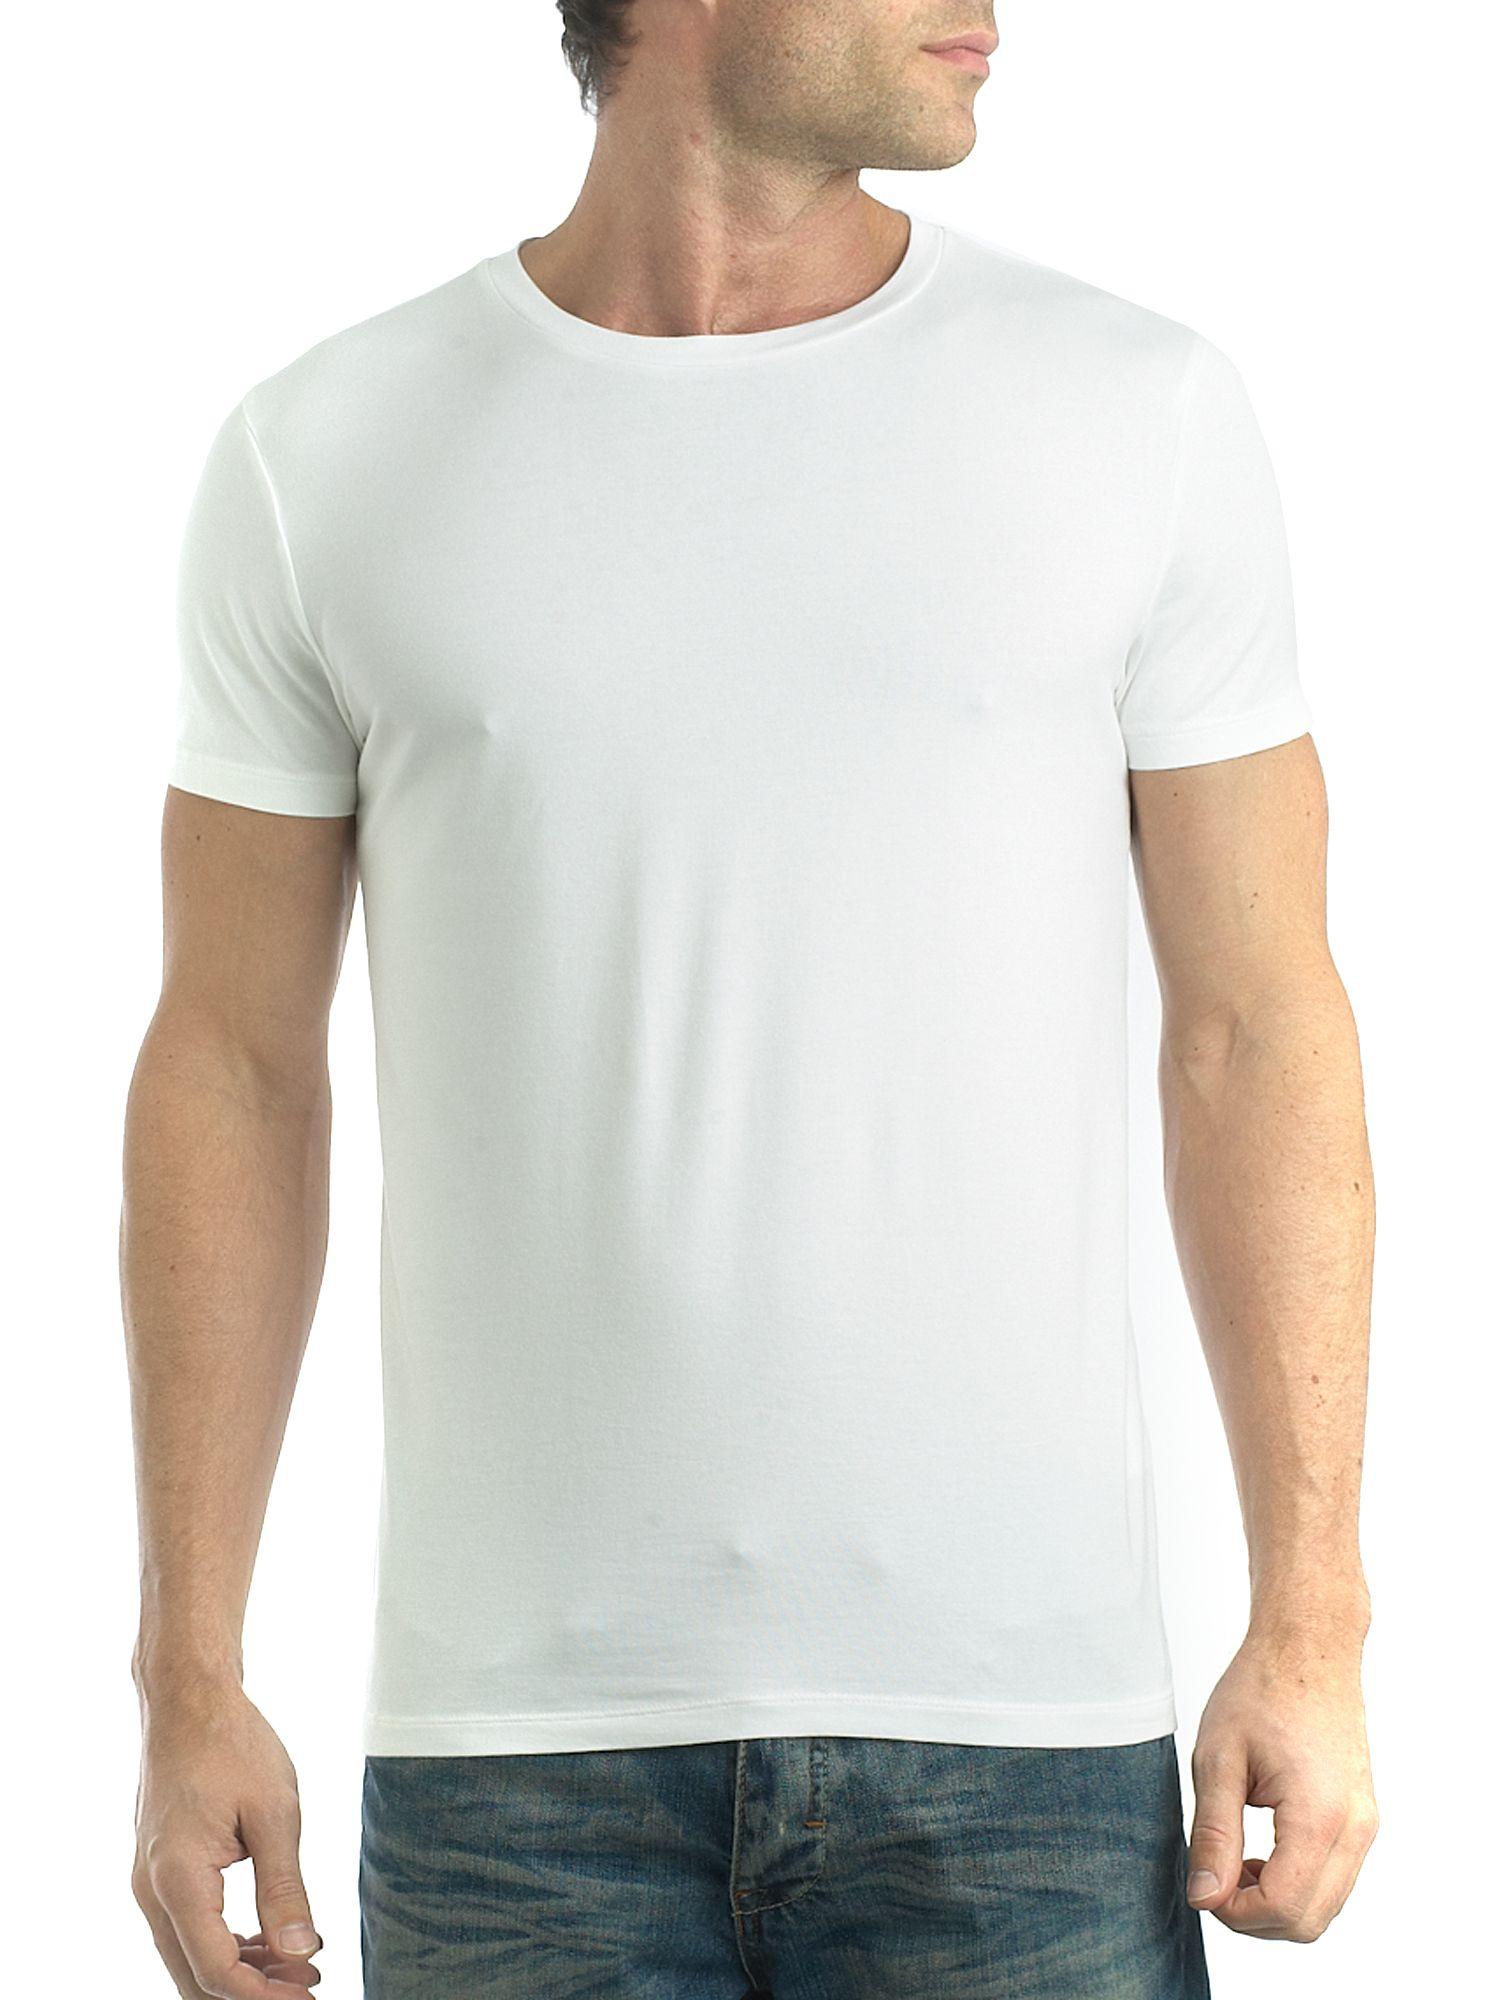 Hugo Boss Basic 2 pocket T-shirt White product image